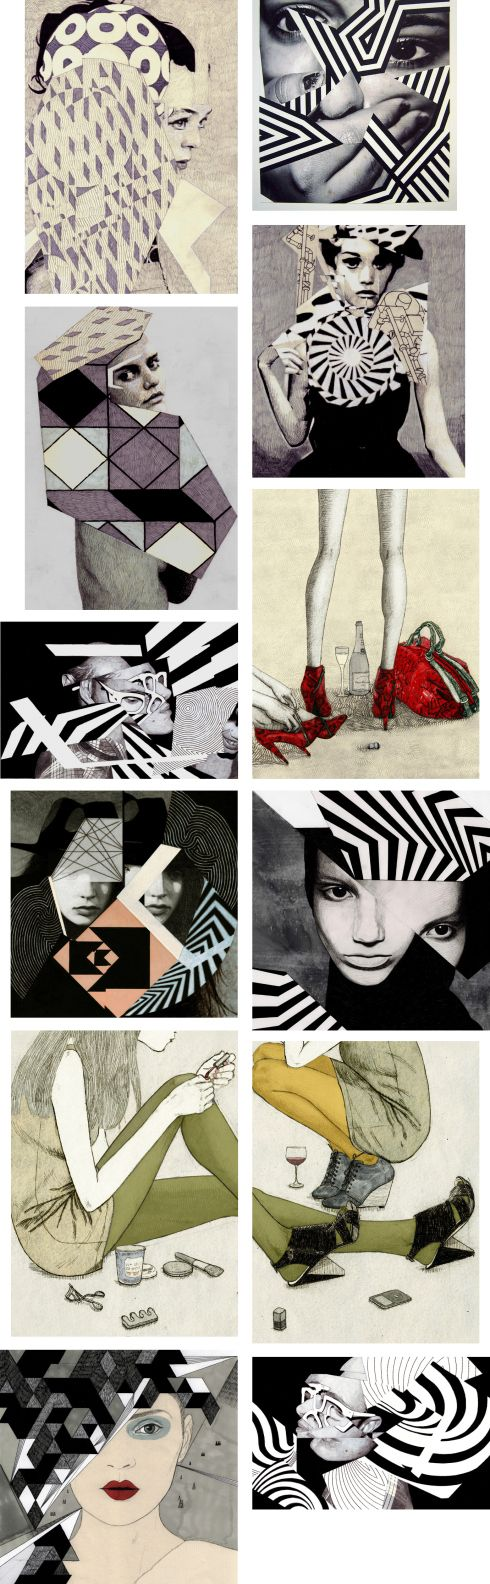 We're feeling kinda smitten with the work of Anna Higgie Draws. And yes